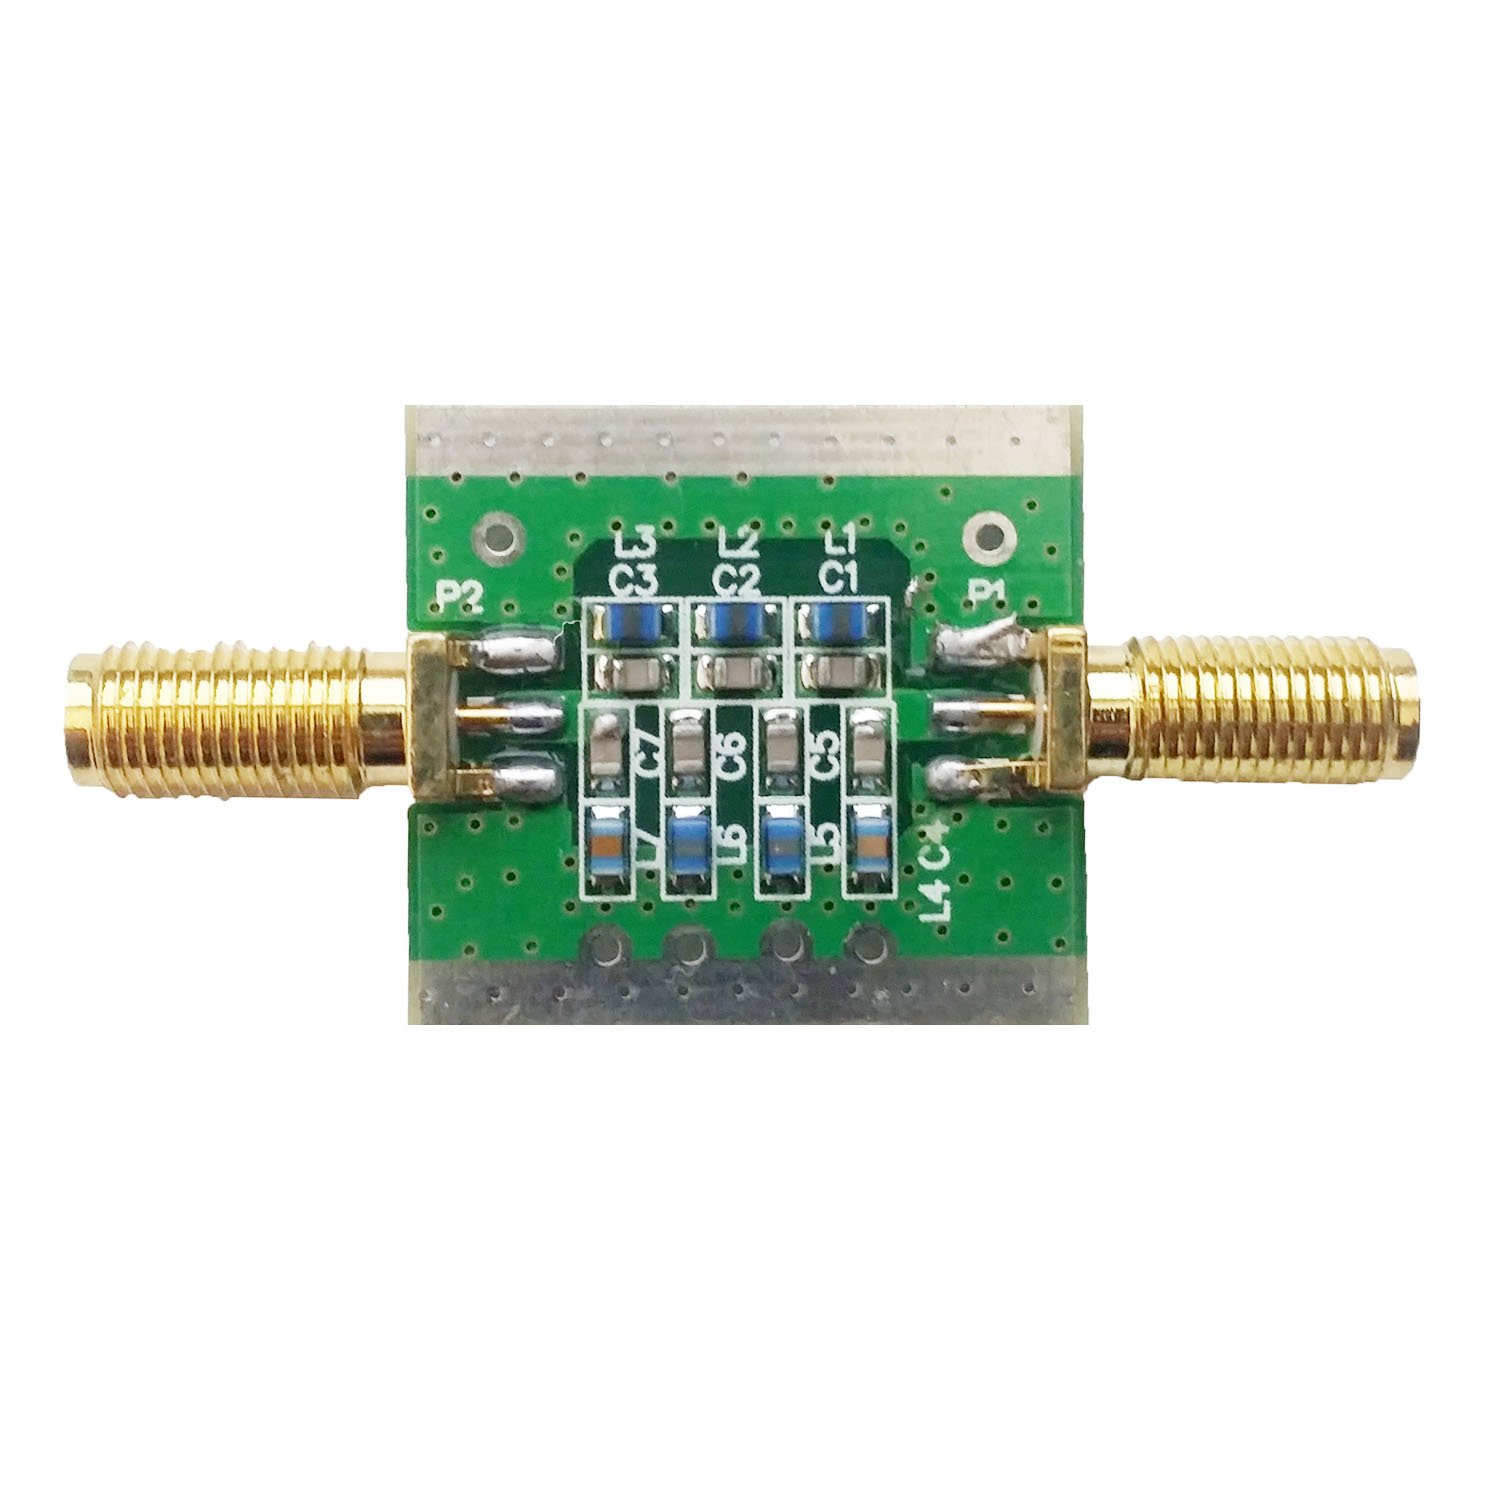 Broadcast Fm Block Filter 88 108 Mhz By Rtl Radio Frequency Circuits Electronic Blog For Hobbyist Sdr Home Audio Theater